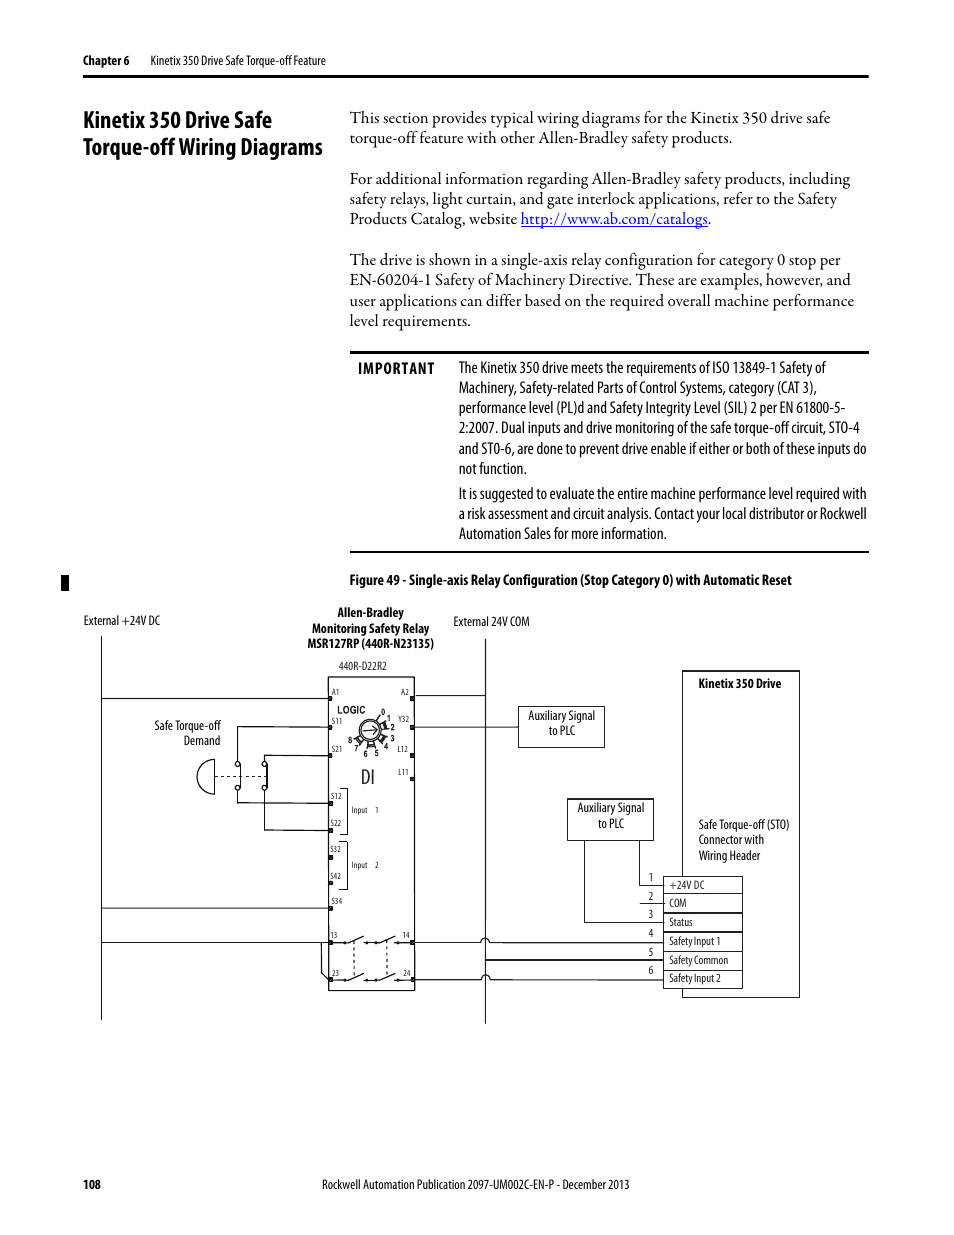 rockwell automation 2097 vxxx kinetix 350 single axis ethernet_ip servo drive user manual page108?resize\\\\\\\=665%2C861 axis lighting wiring diagrams wiring diagrams Basic Electrical Wiring Diagrams at bakdesigns.co